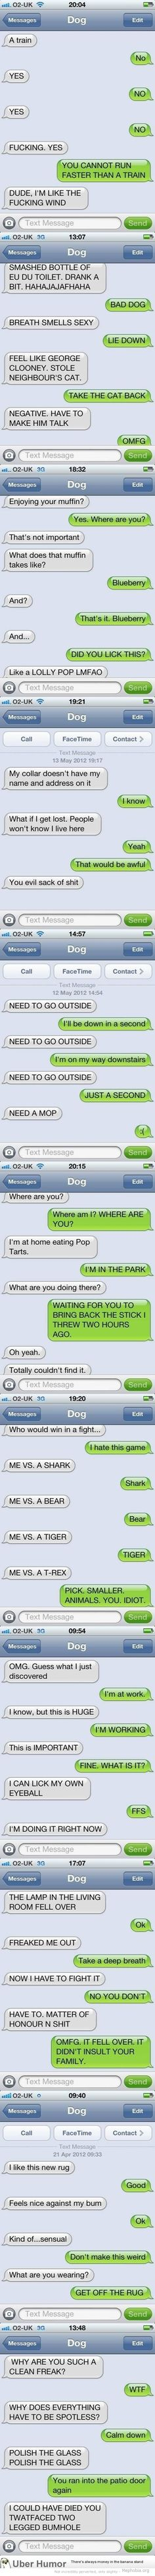 Dog texts omg....lololol I laughed lots at the last one